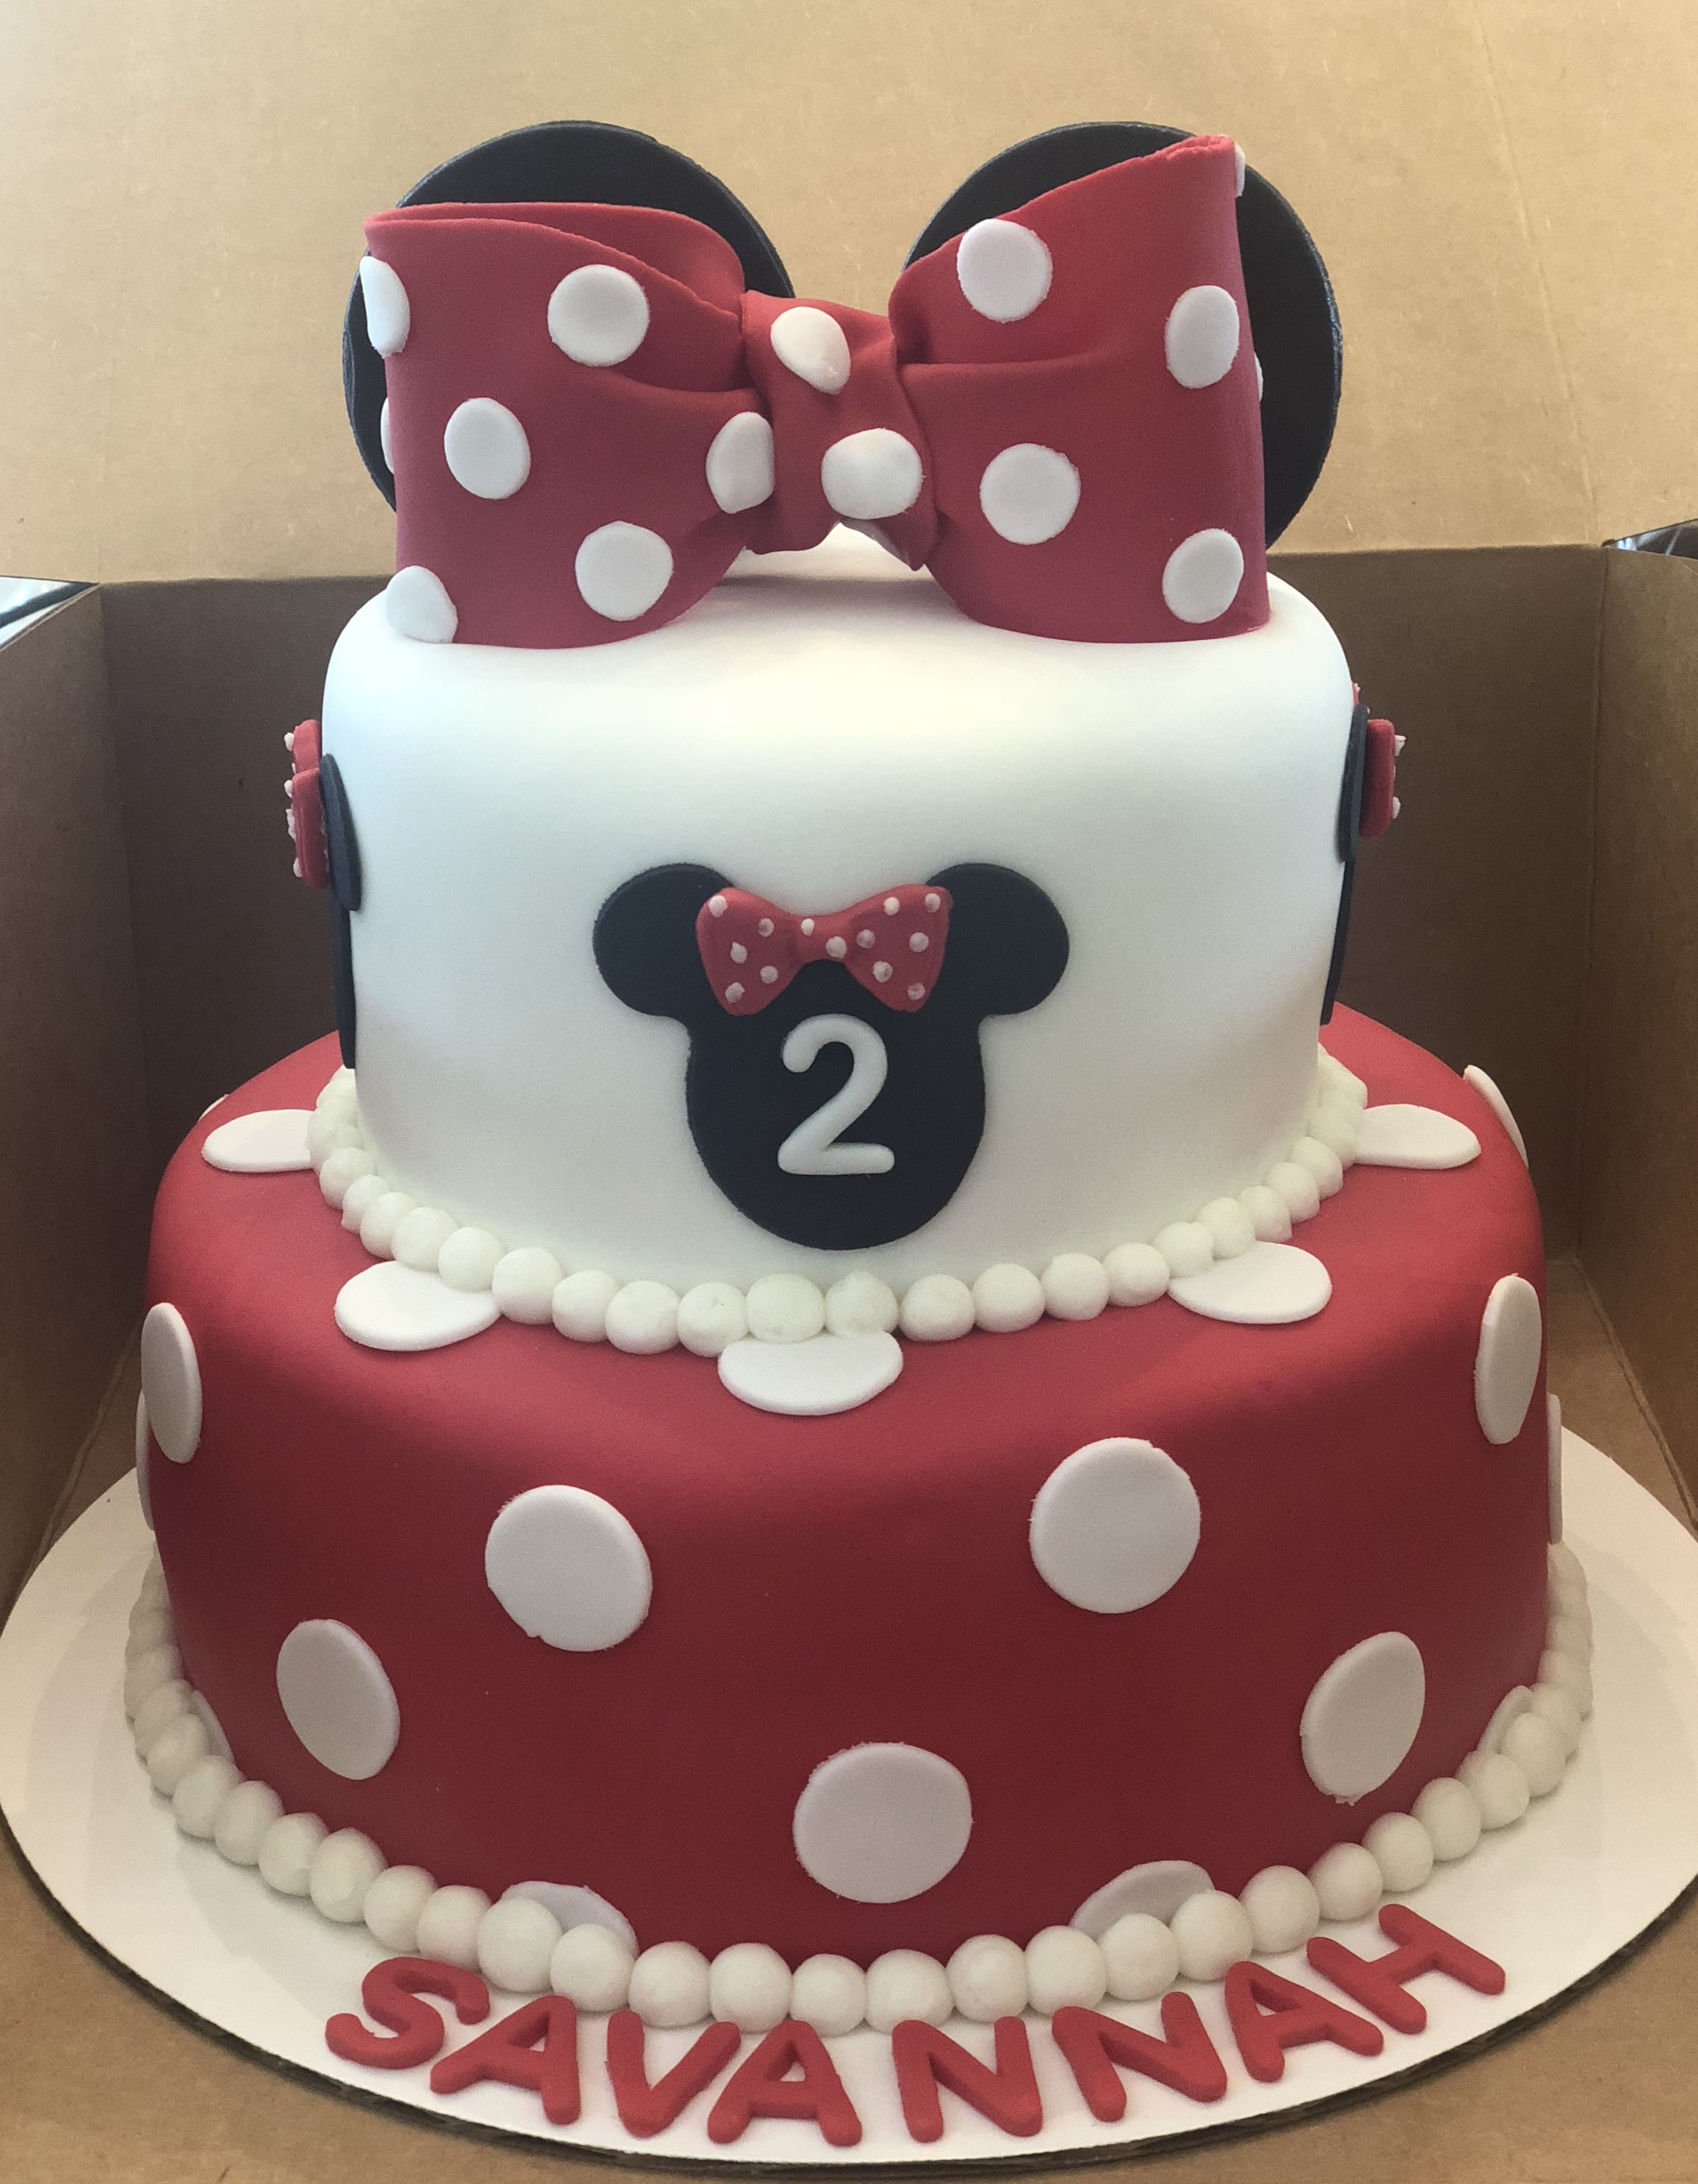 Minnie Mouse Cake Minnie Mouse Birthday Cakes Toy Story Birthday Cake Boys 1st Birthday Cake